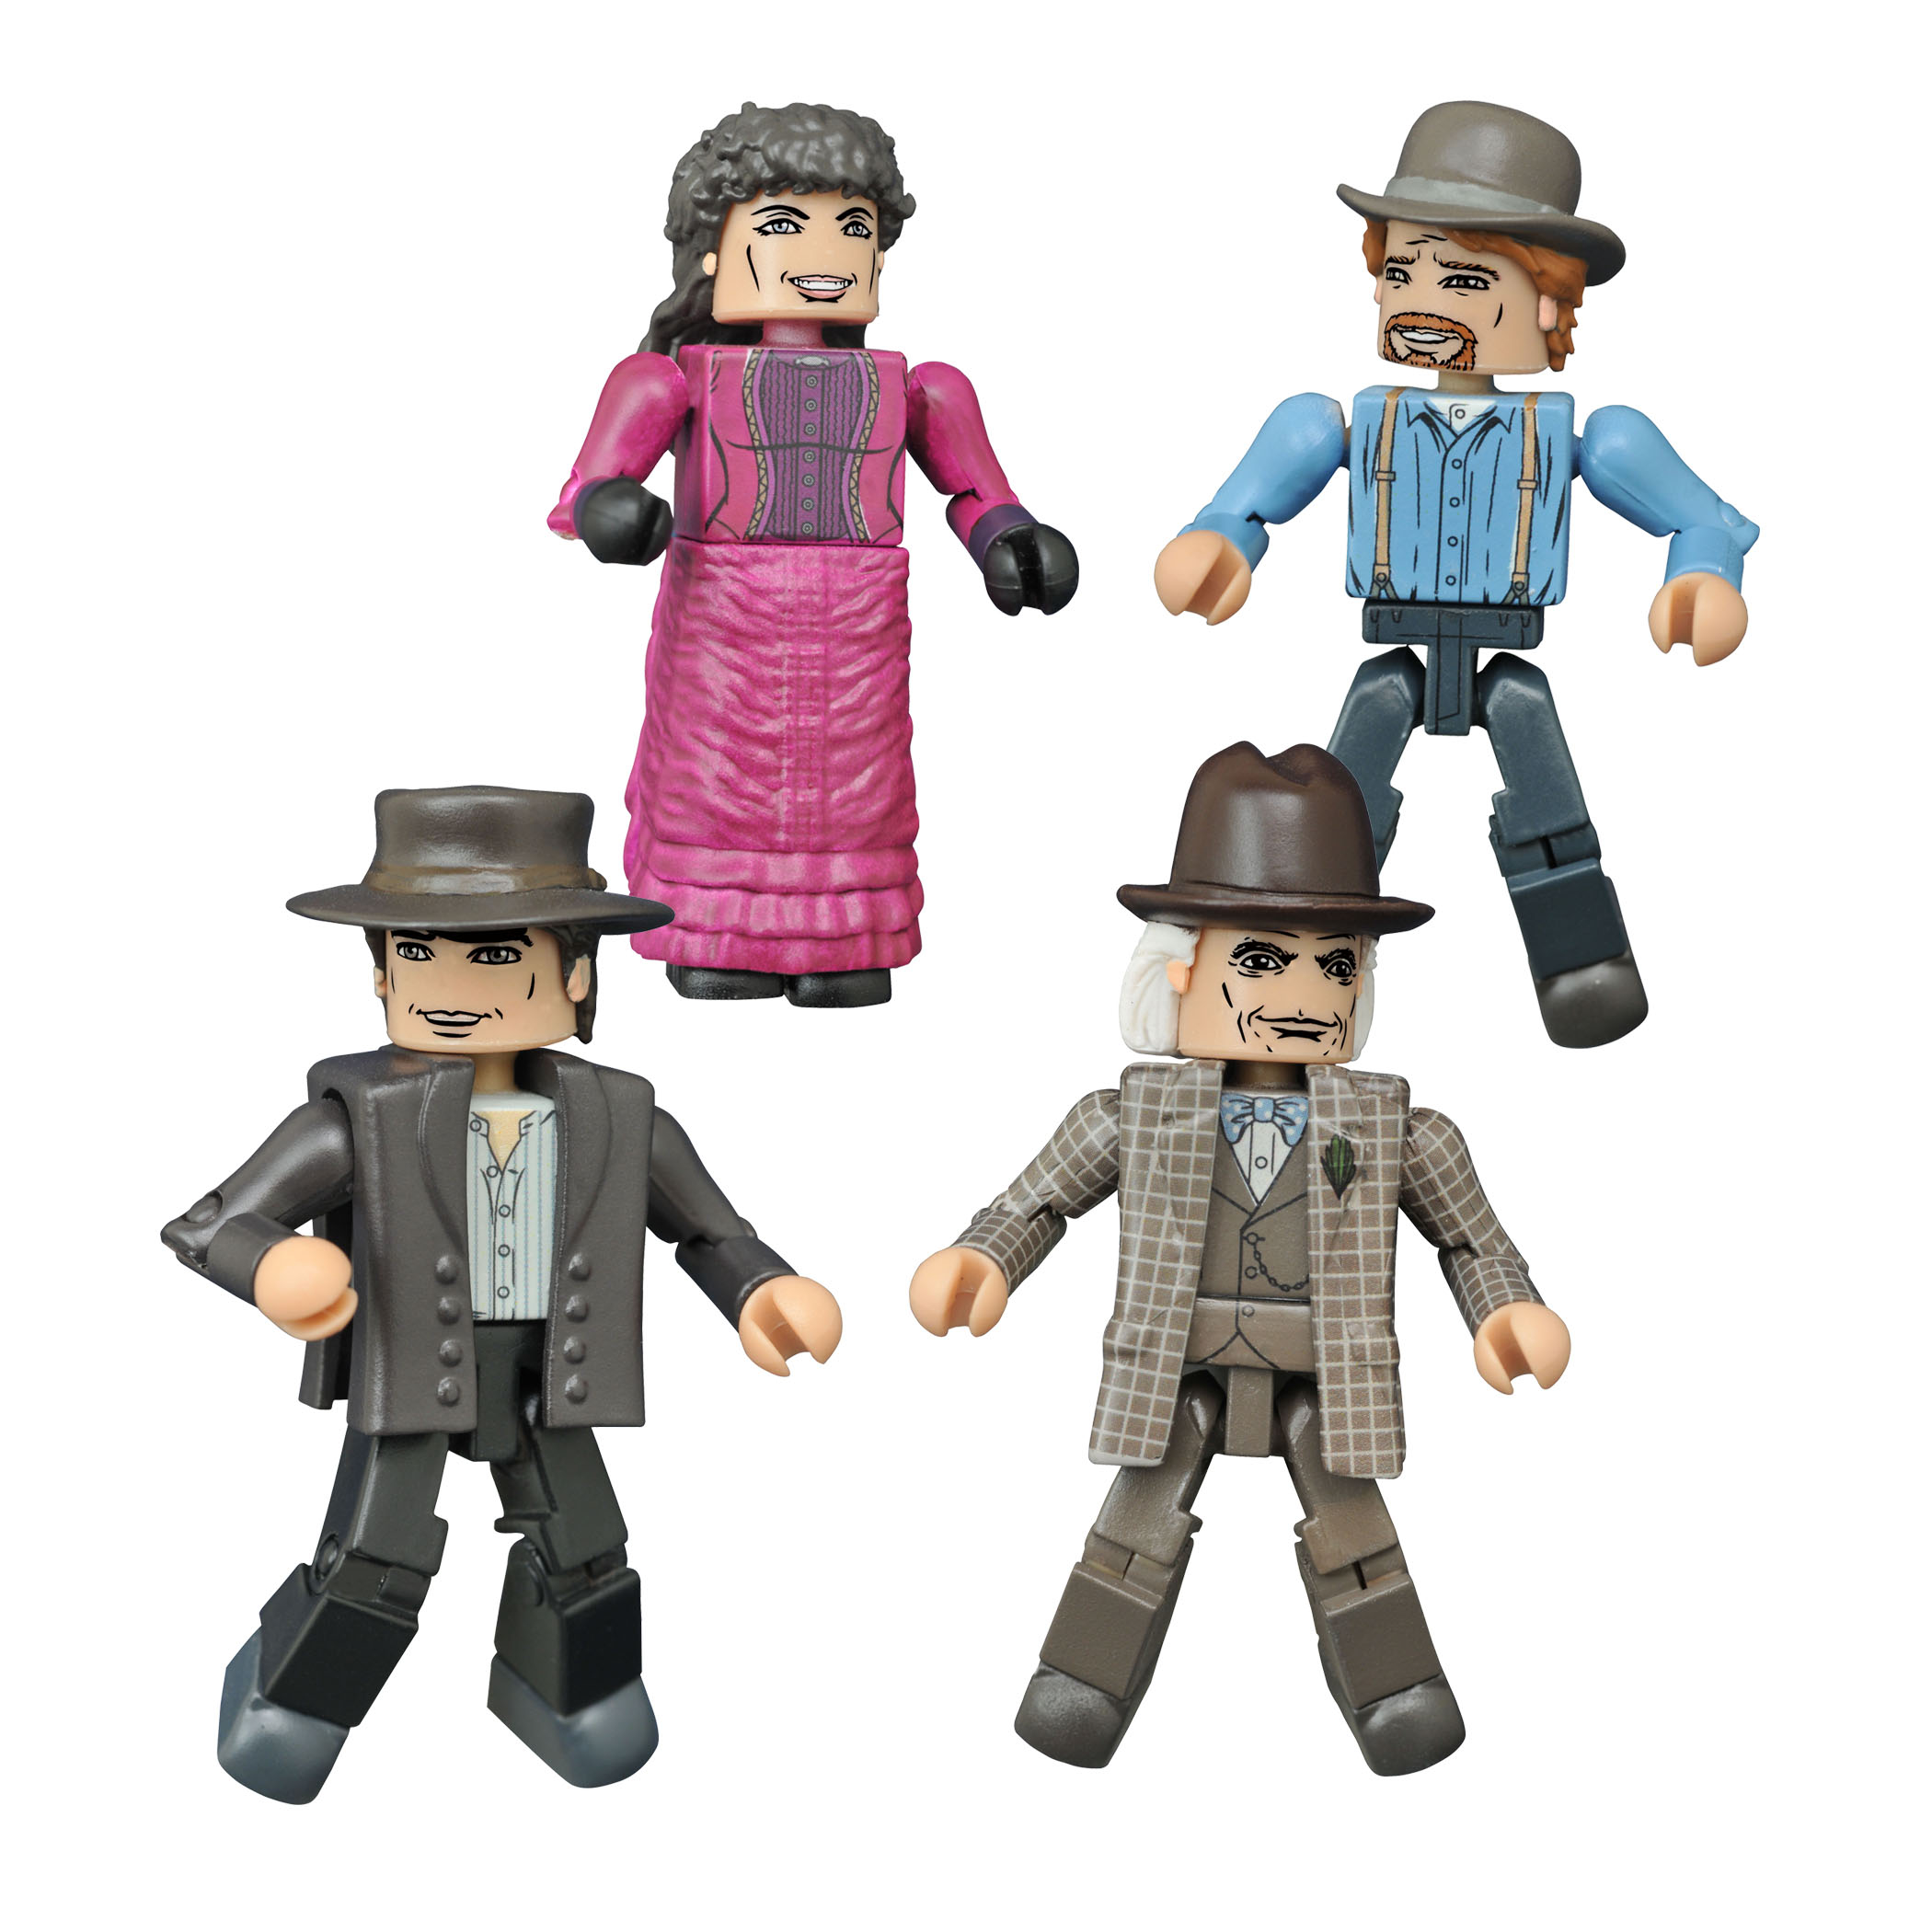 BTTF 30TH ANN MINIMATES 1885 BOX SET